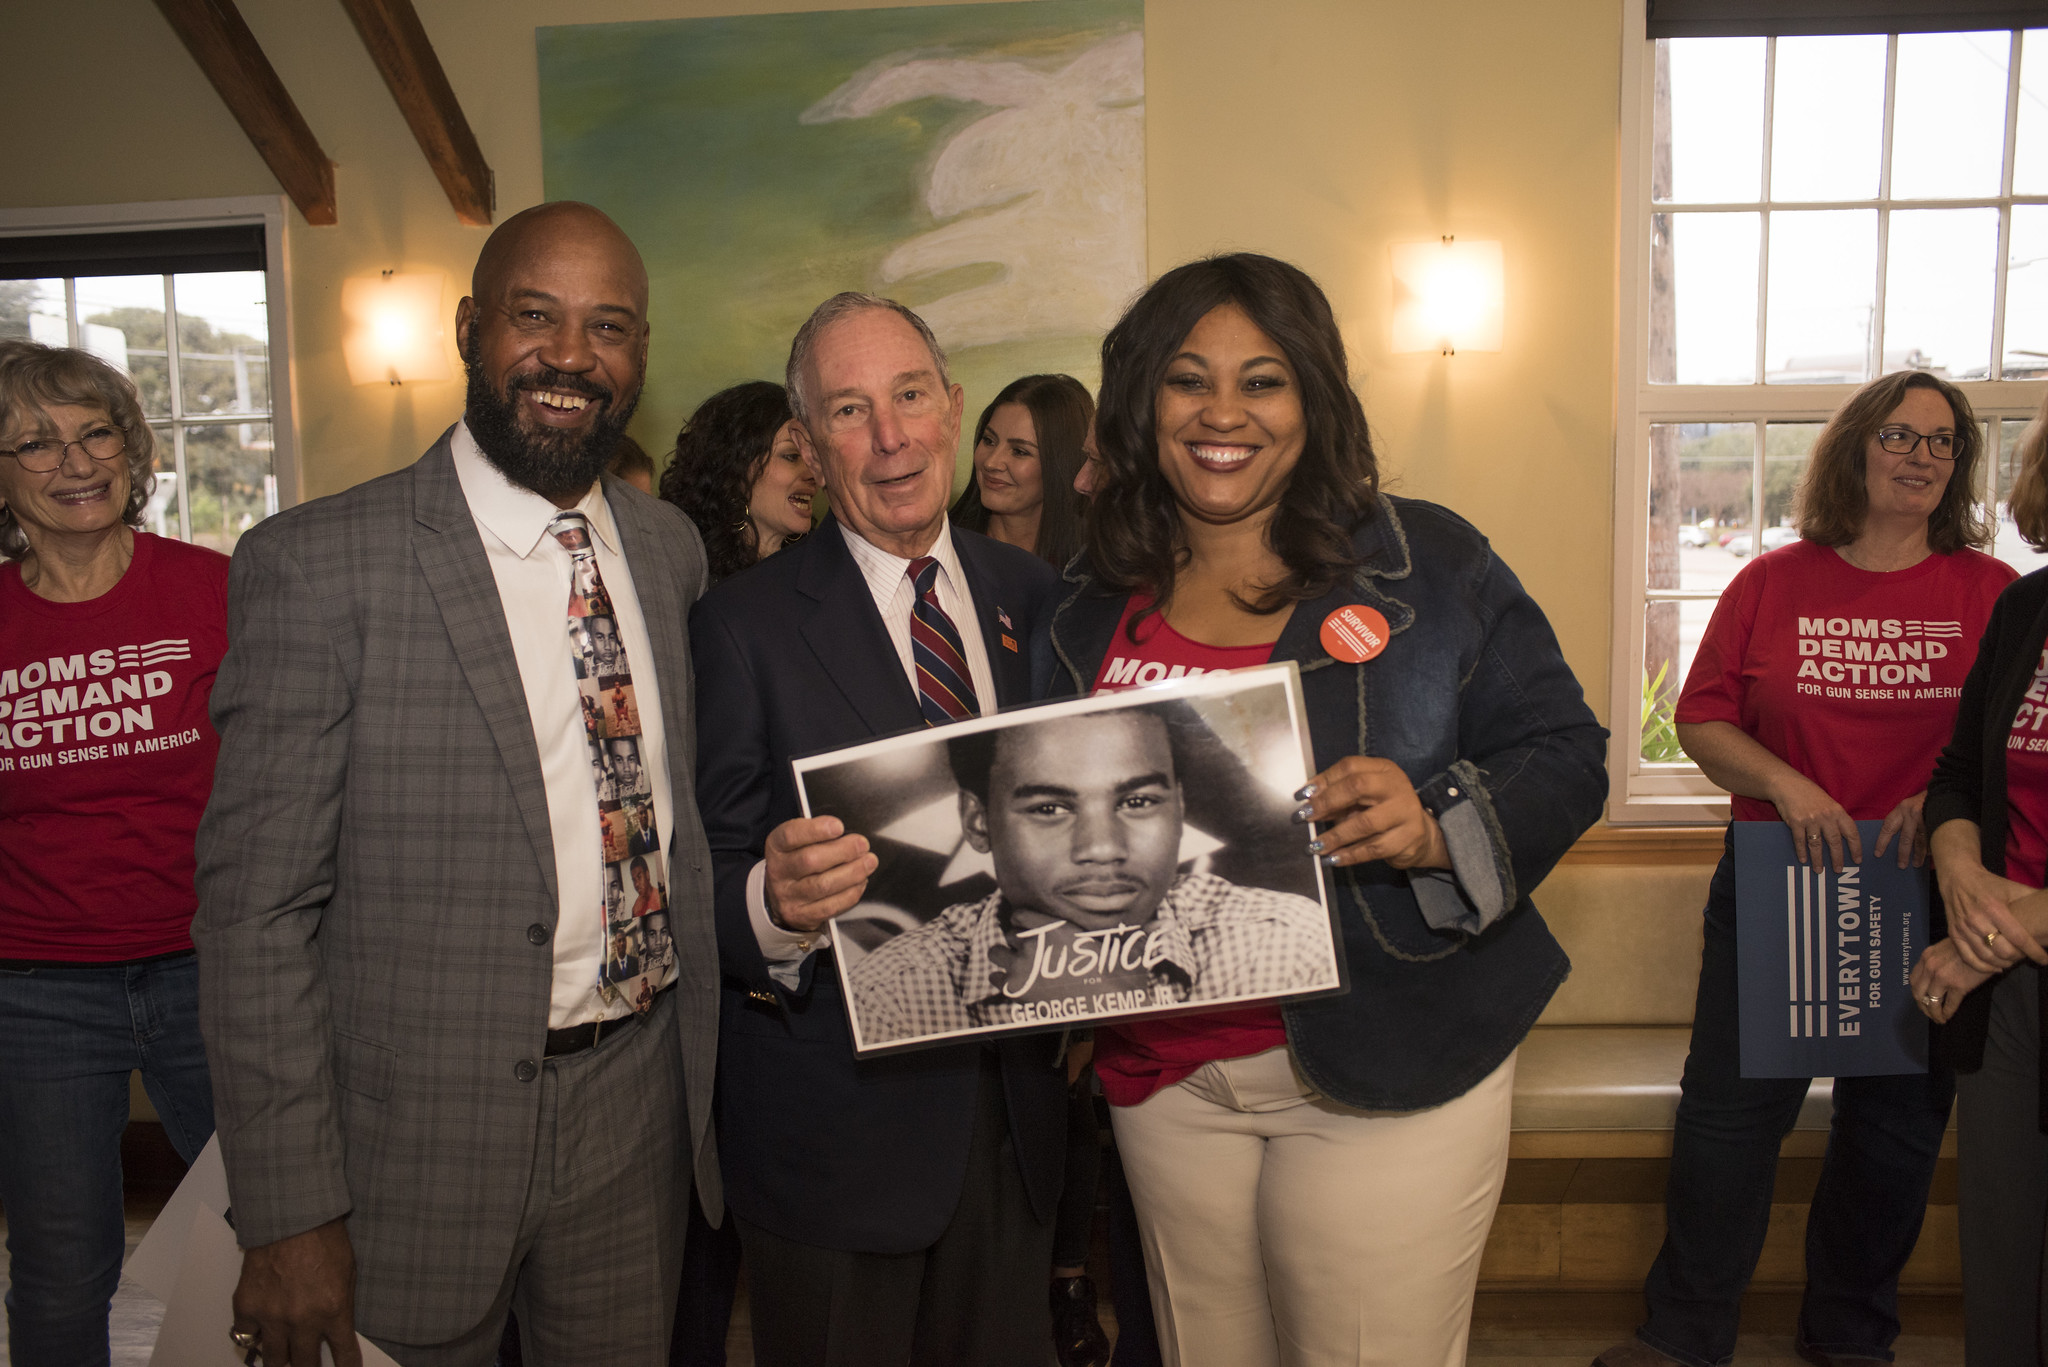 Mike Bloomberg visits Austin to attend a Moms Demand Action event, January 11th, 2019.